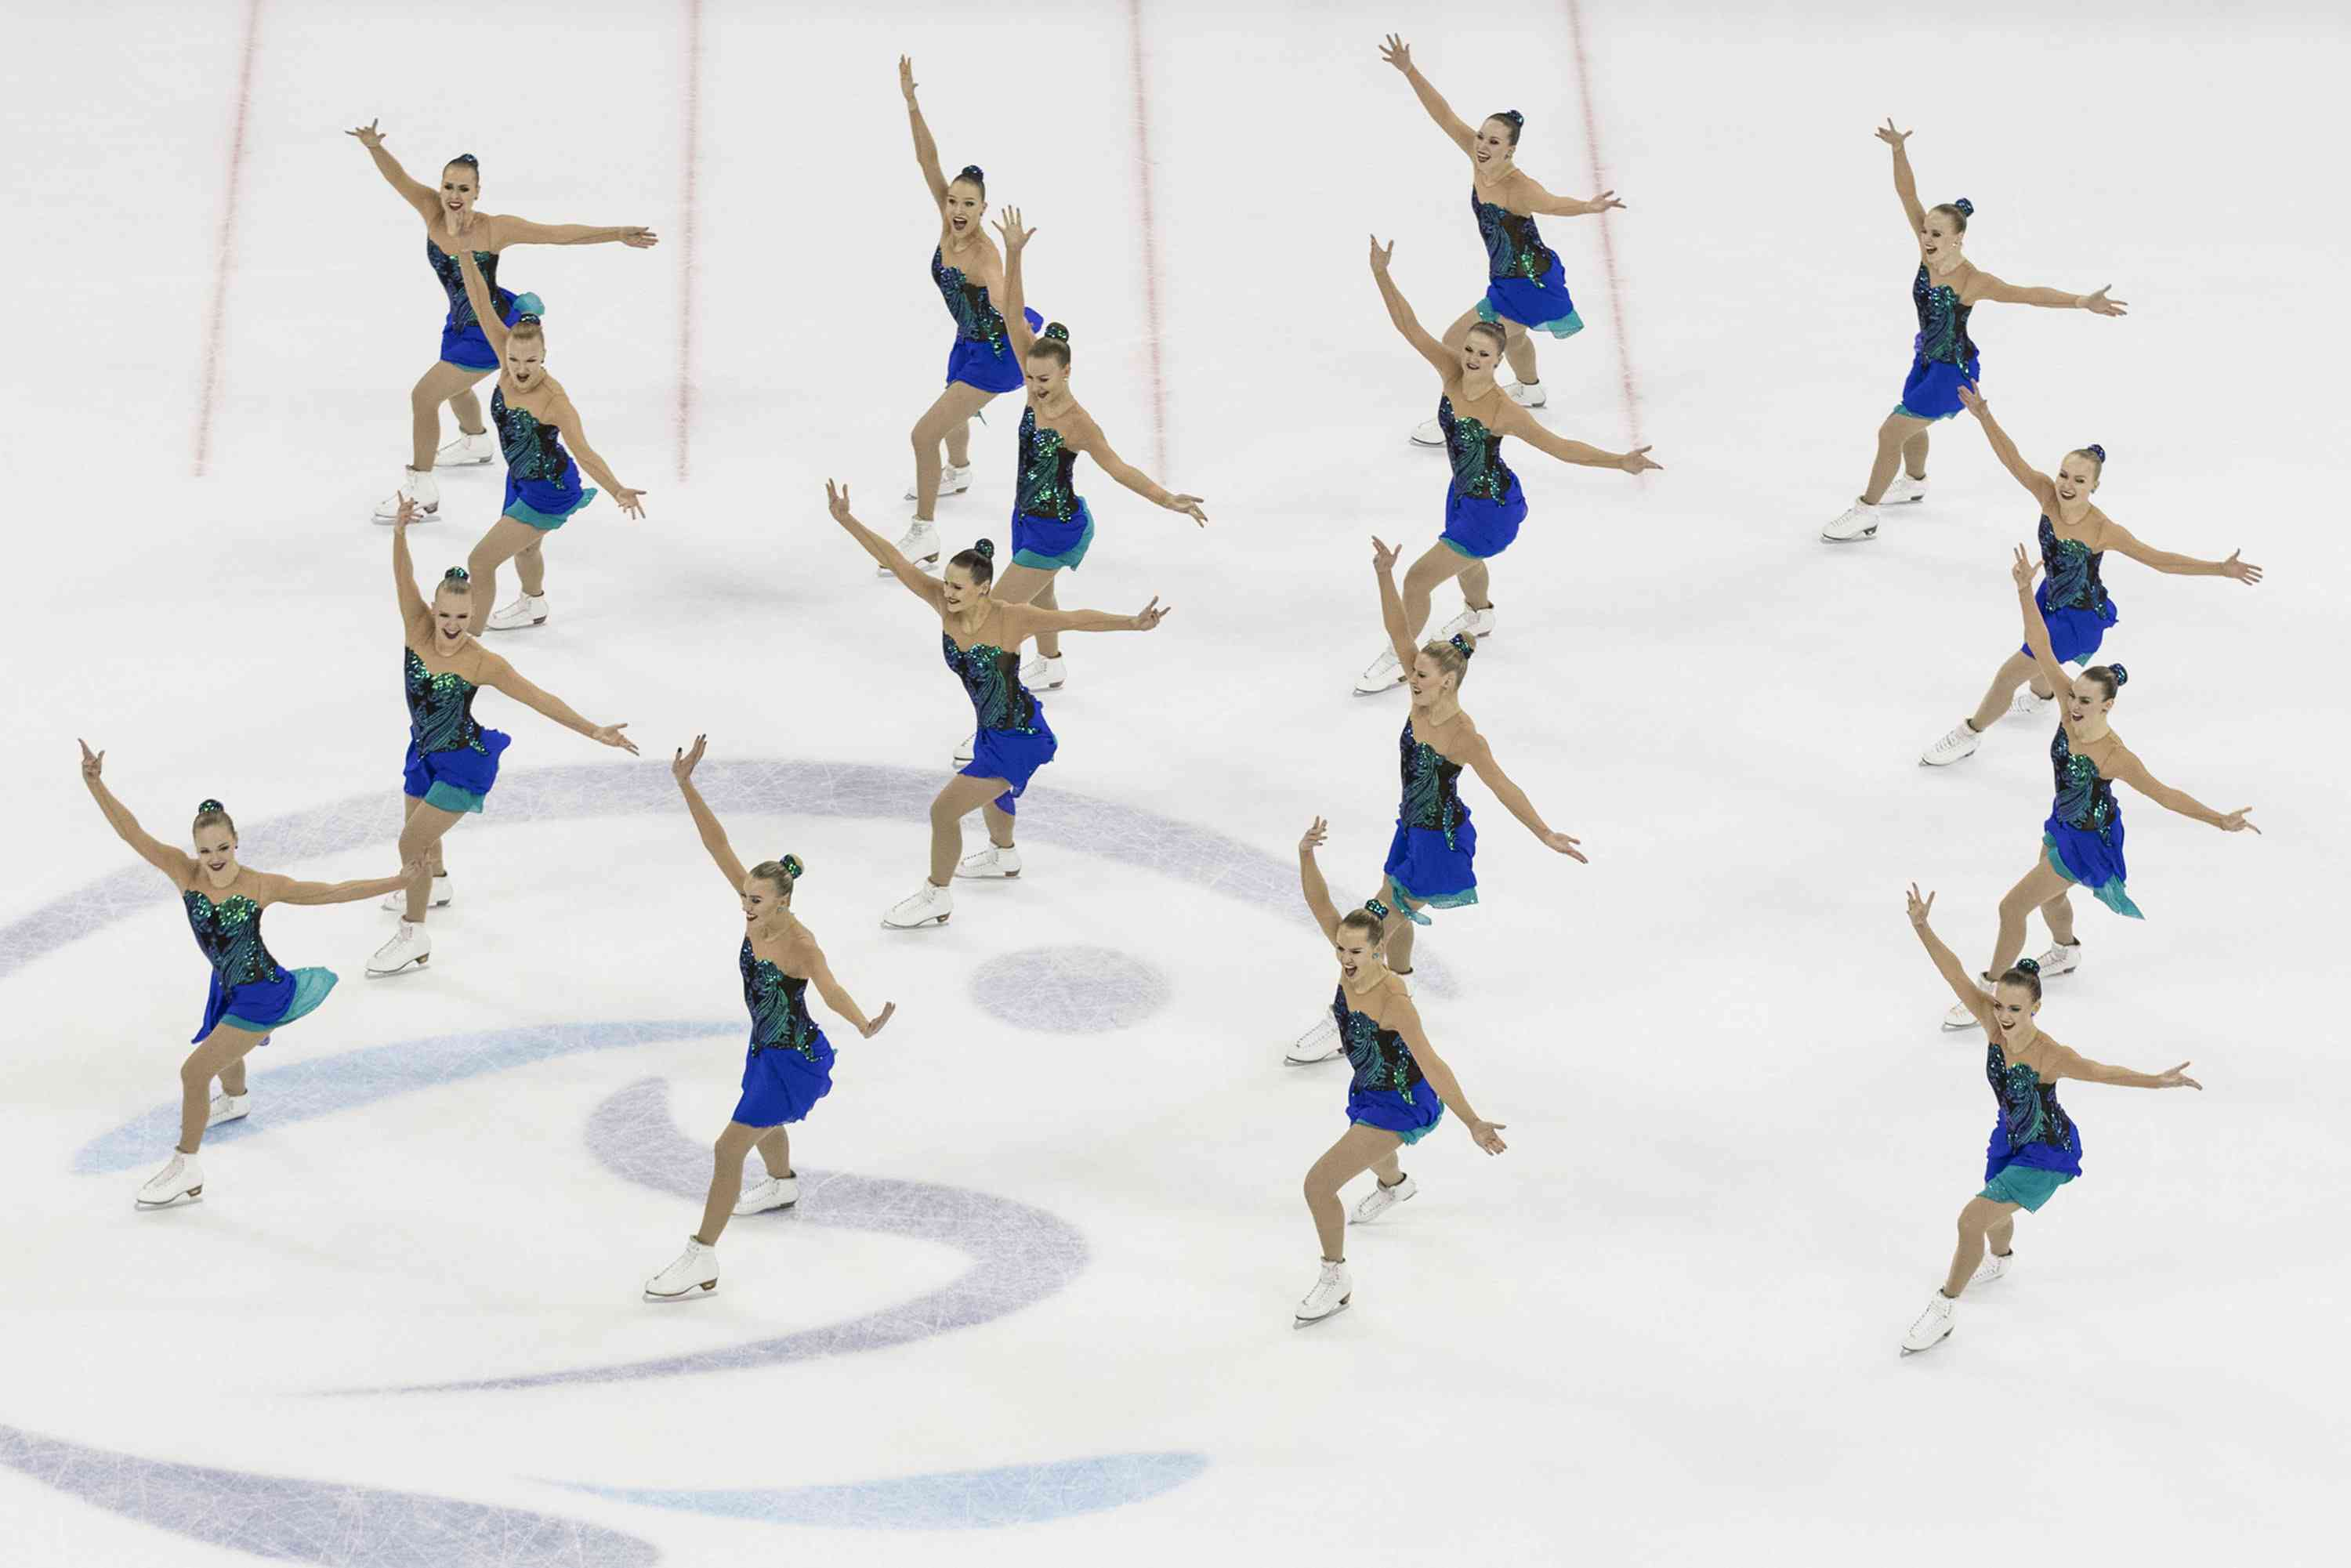 Team of synchronized skaters on the ice